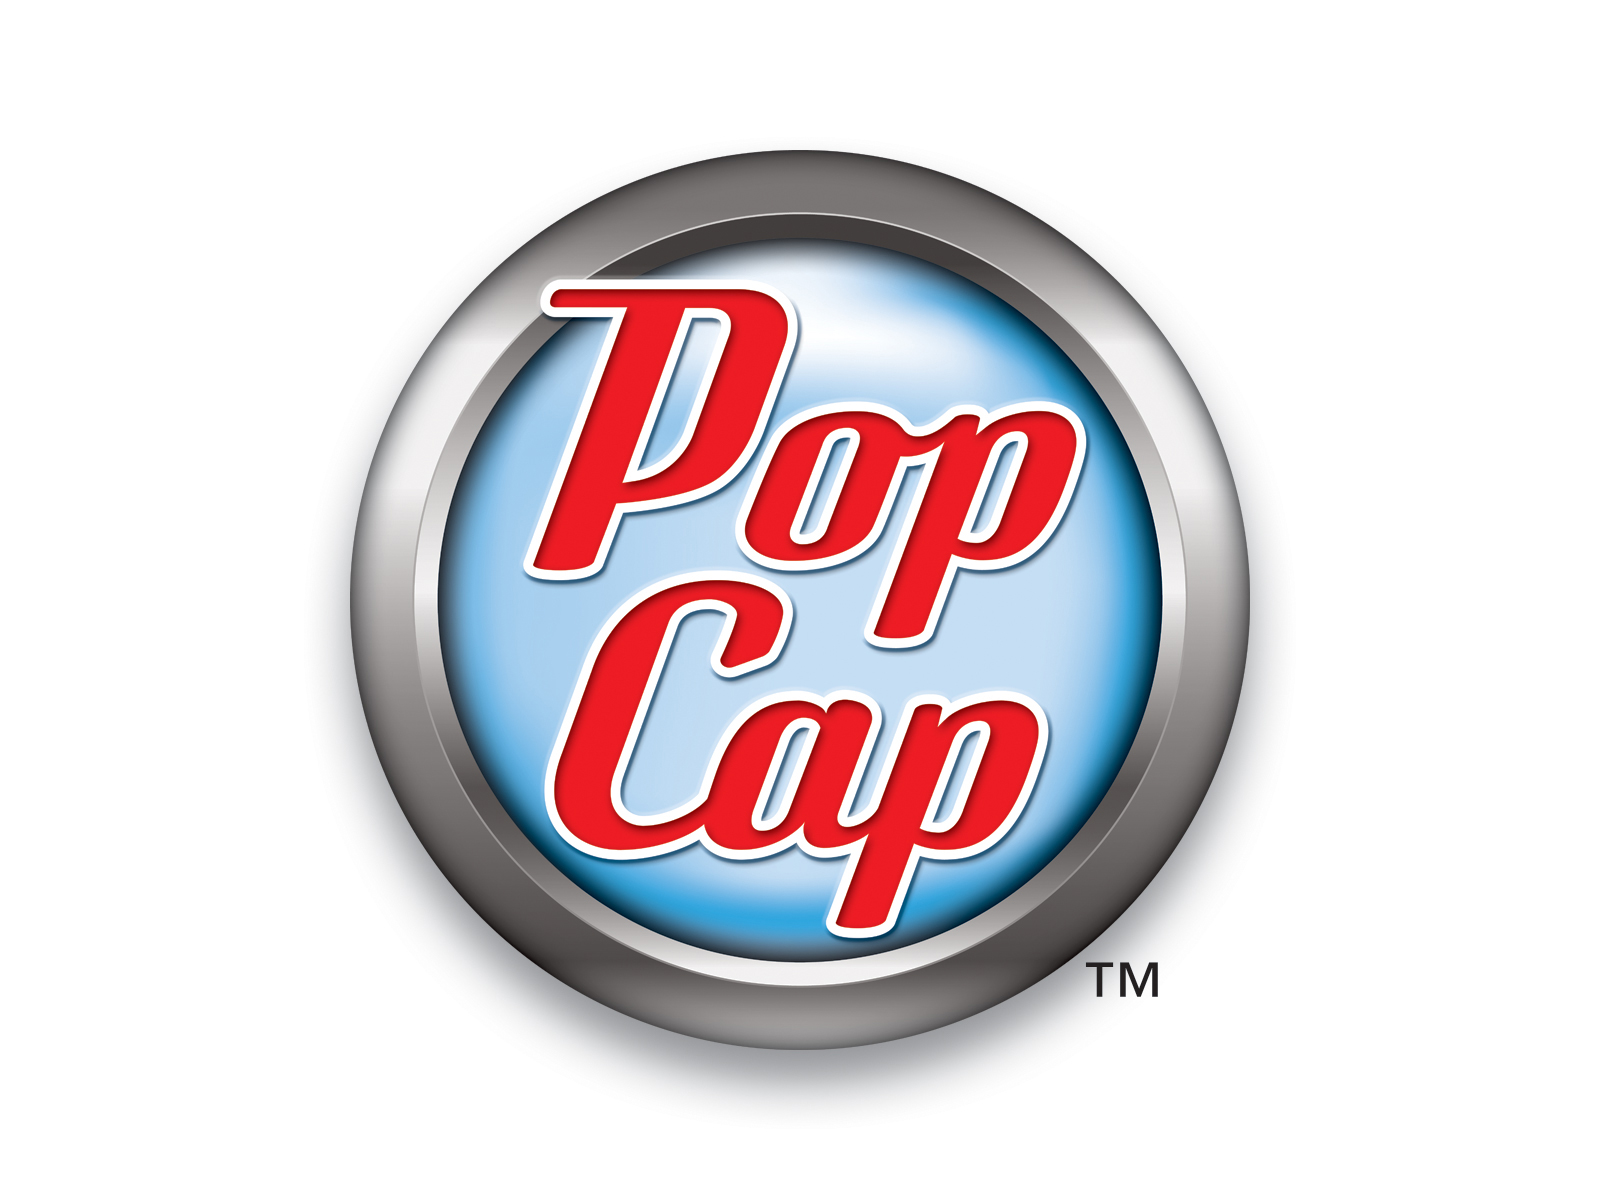 Constantly acclaimed by consumers and critics, PopCap's games are played on the Web, social platforms, desktop computers, myriad mobile devices (cell phones, smartphones, PDAs, Pocket PCs, iPod, iPhone, iPad and more), popular game consoles (such as .